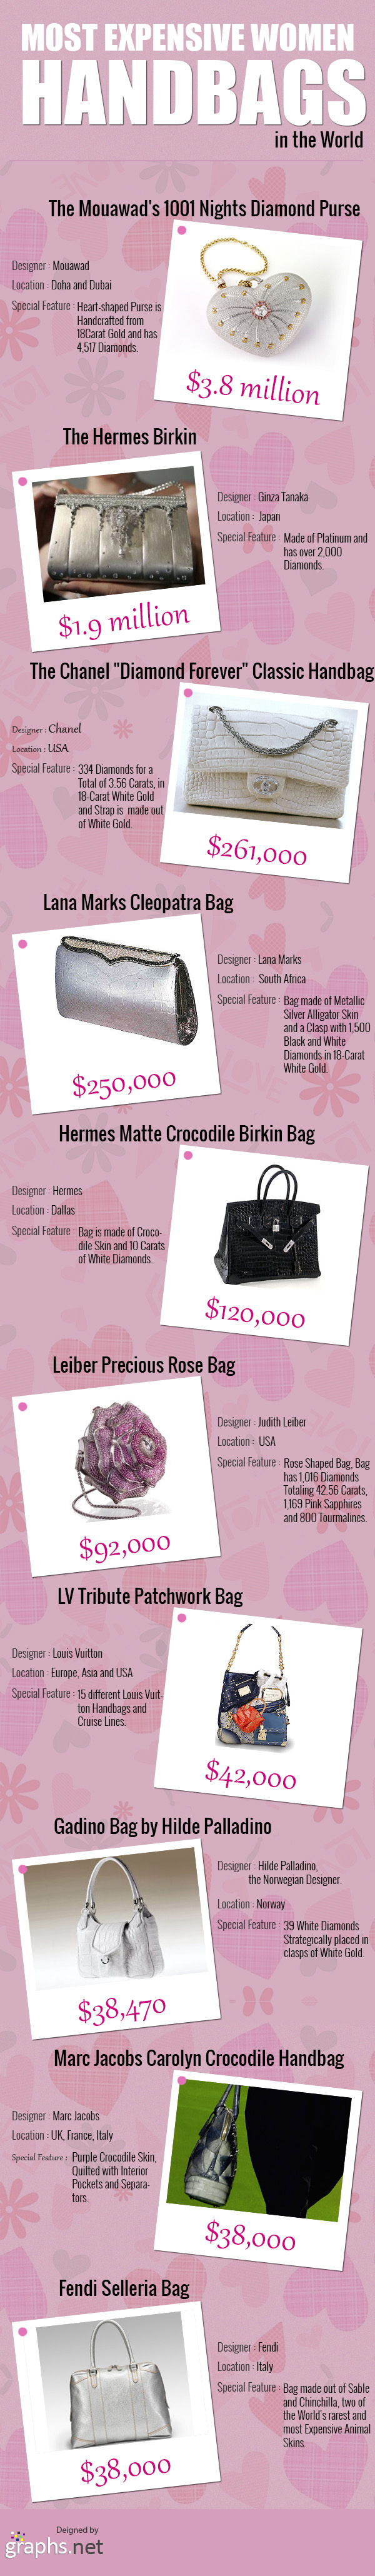 Most Expensive Women Handbags in the World